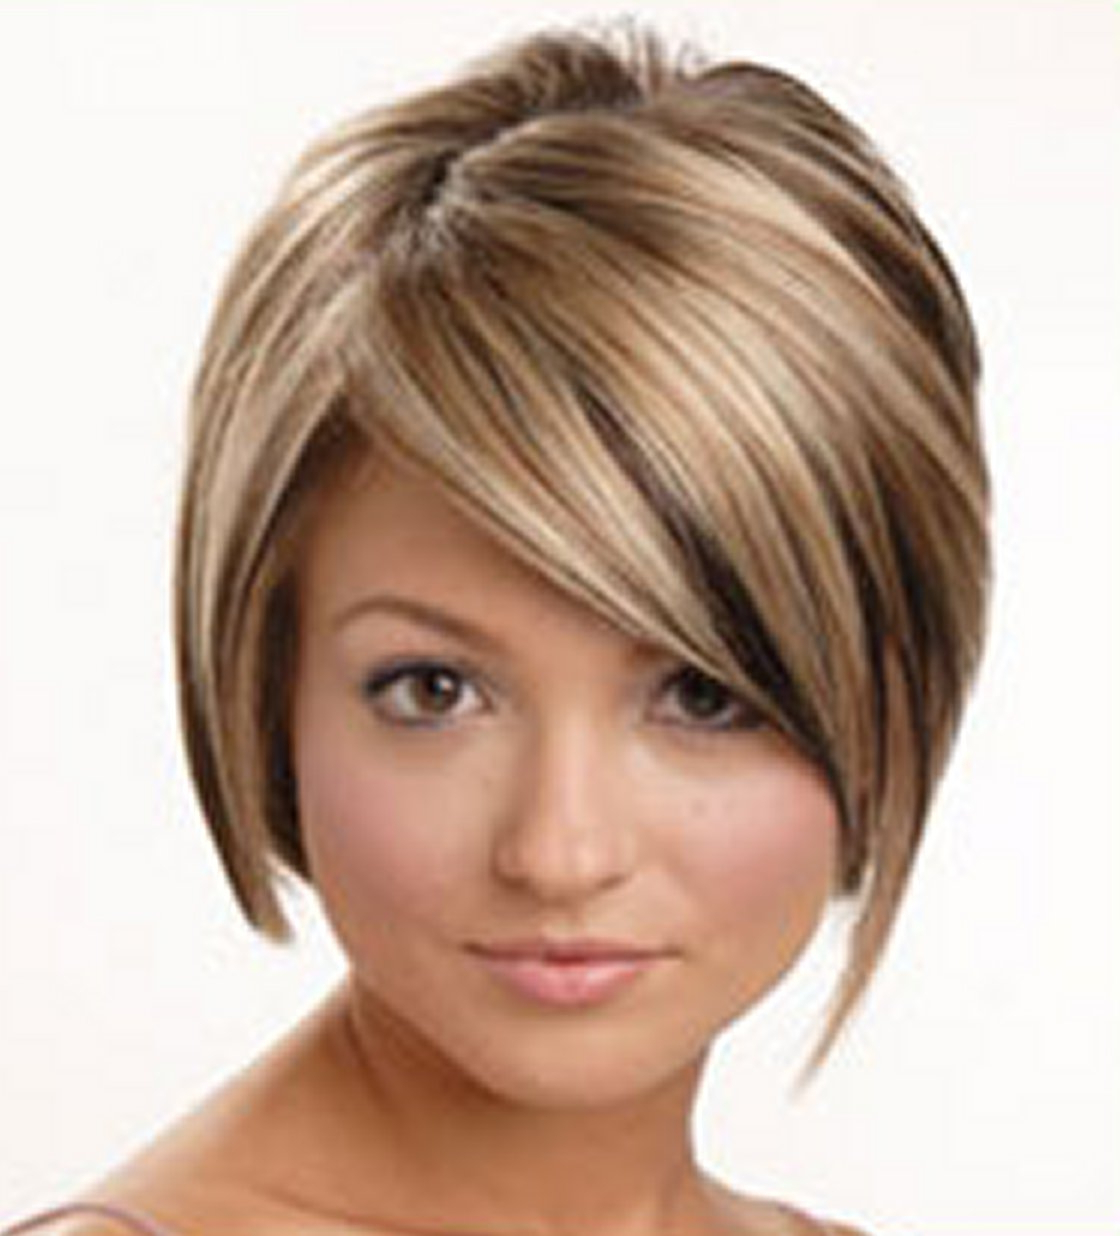 Short Curly Hairstyles For Round Faces | 1080P Hd Wallpaper For Medium Short Hairstyles Round Faces (View 17 of 25)